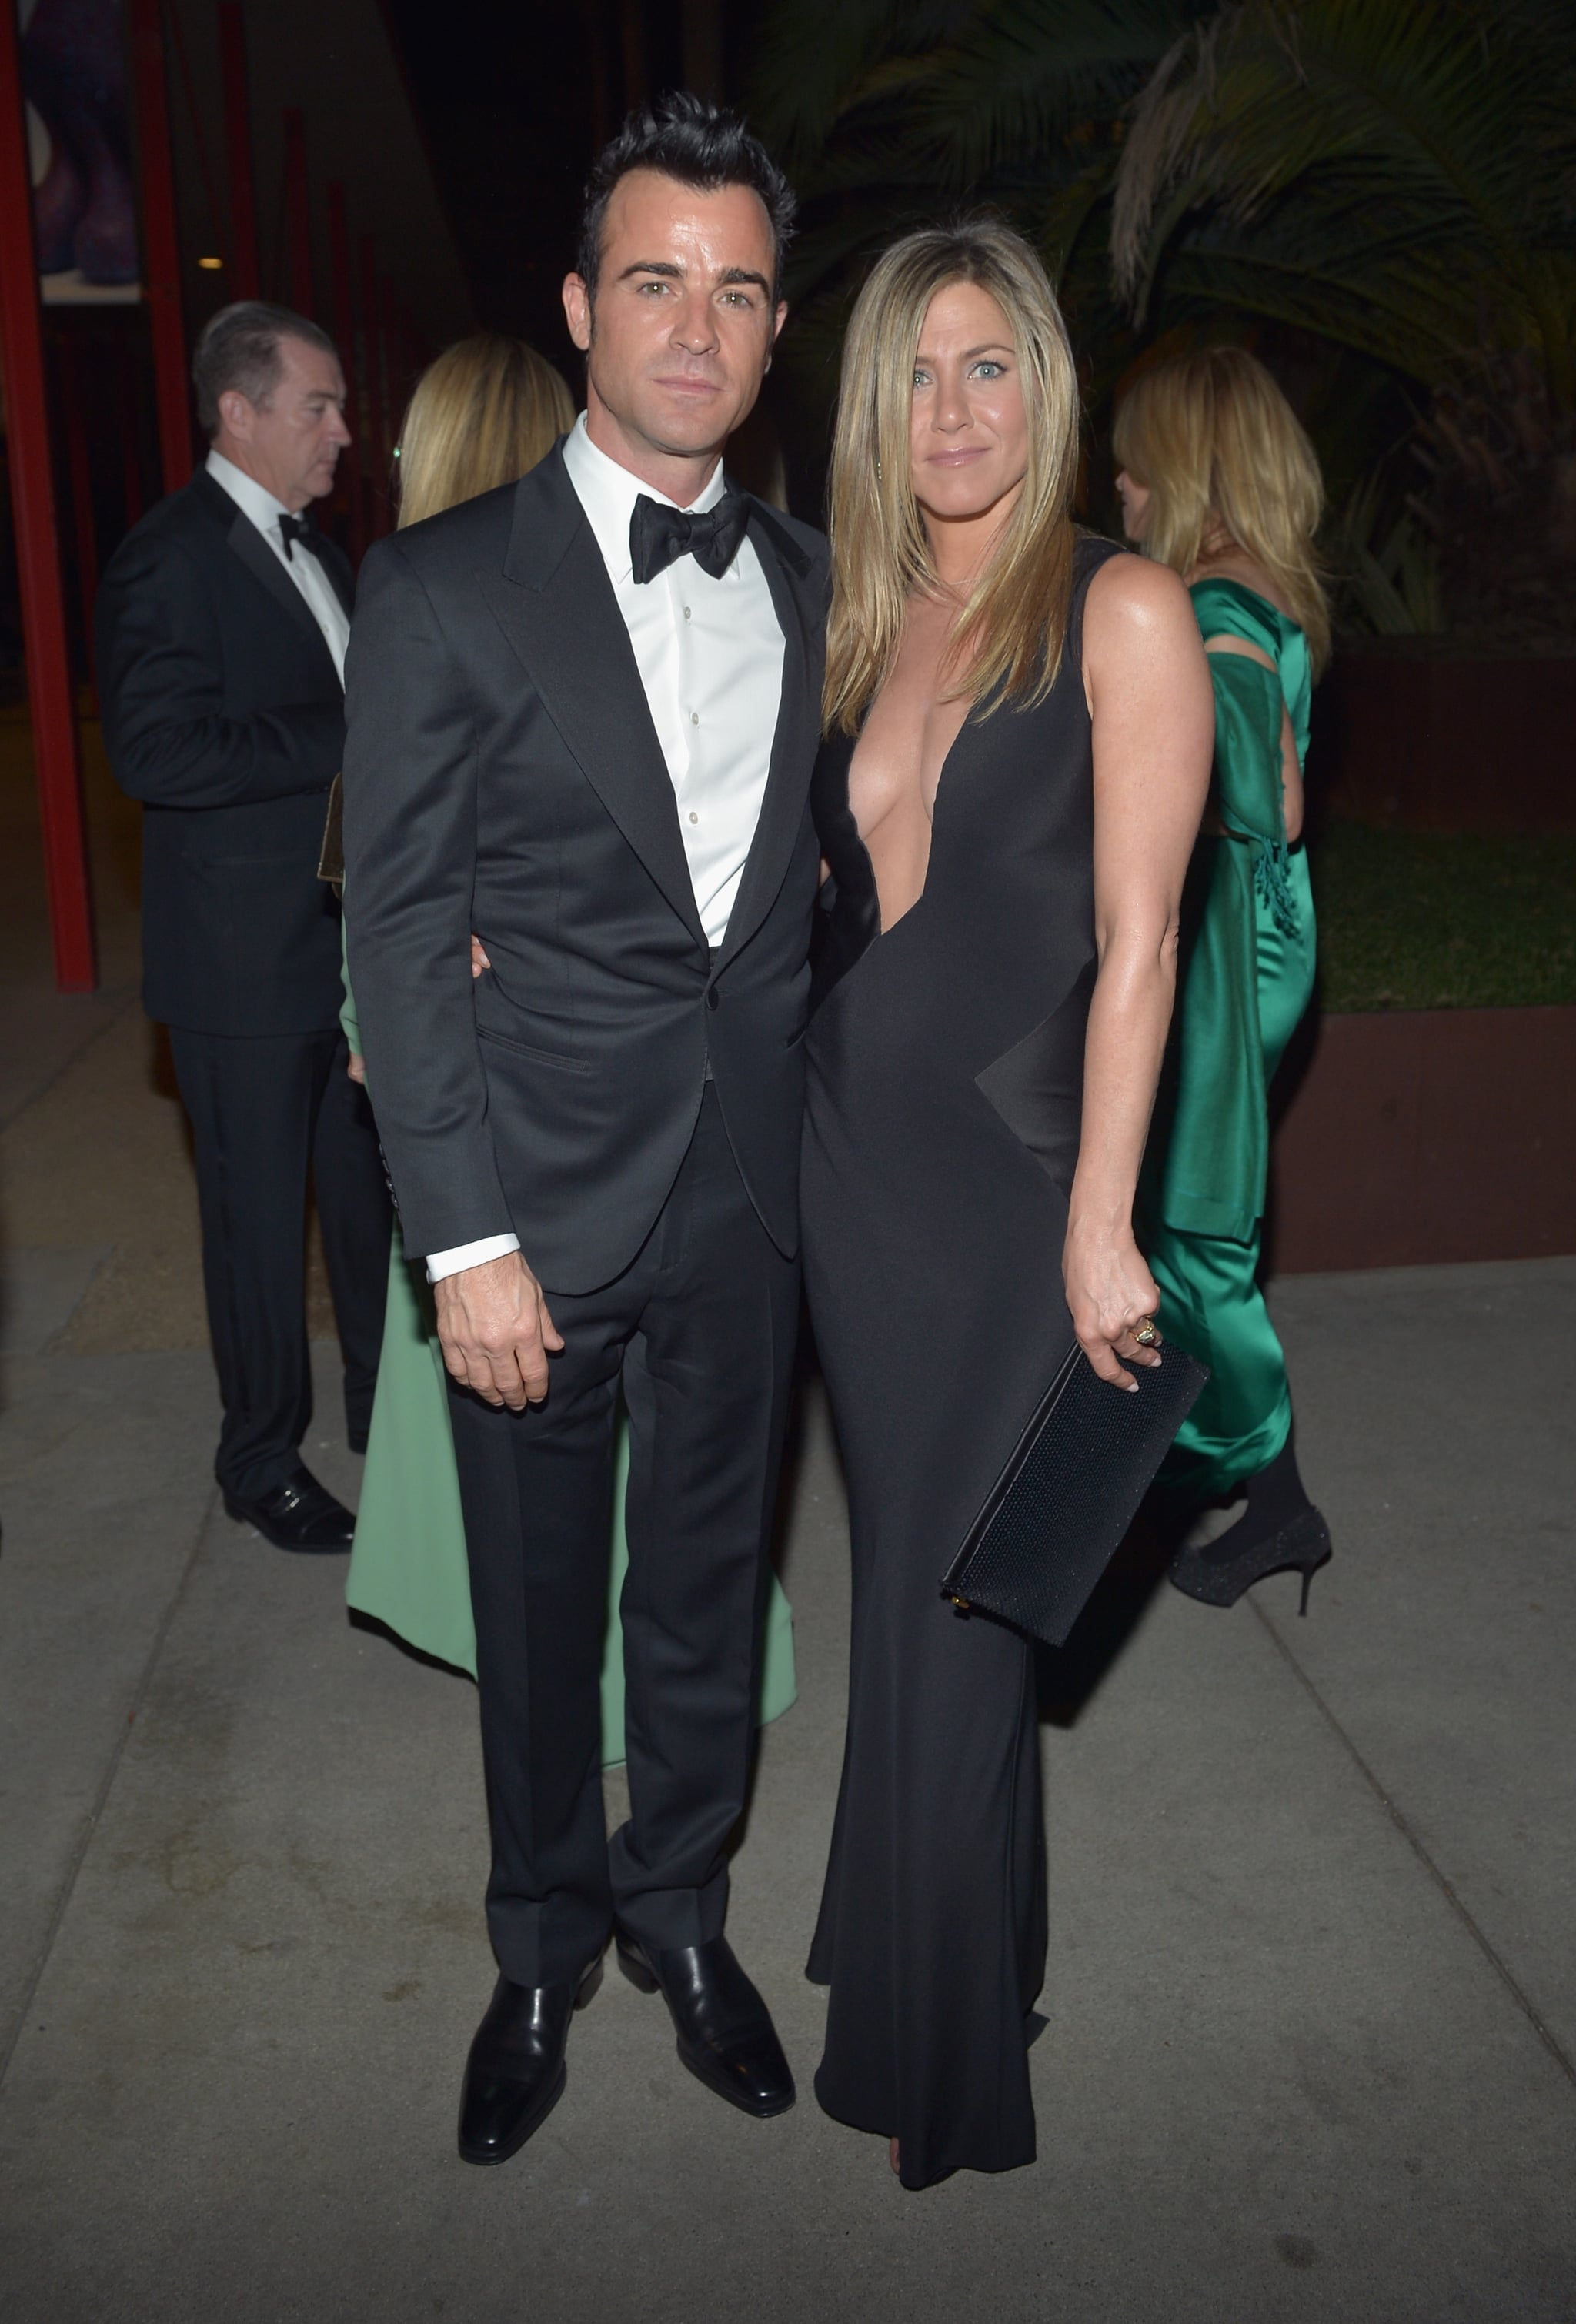 For The 2012 Lacma Event Jennifer Aniston Turned Up The Heat In A Jennifer Aniston Goes Back To Black For We Re The Millers Popsugar Fashion Photo 13